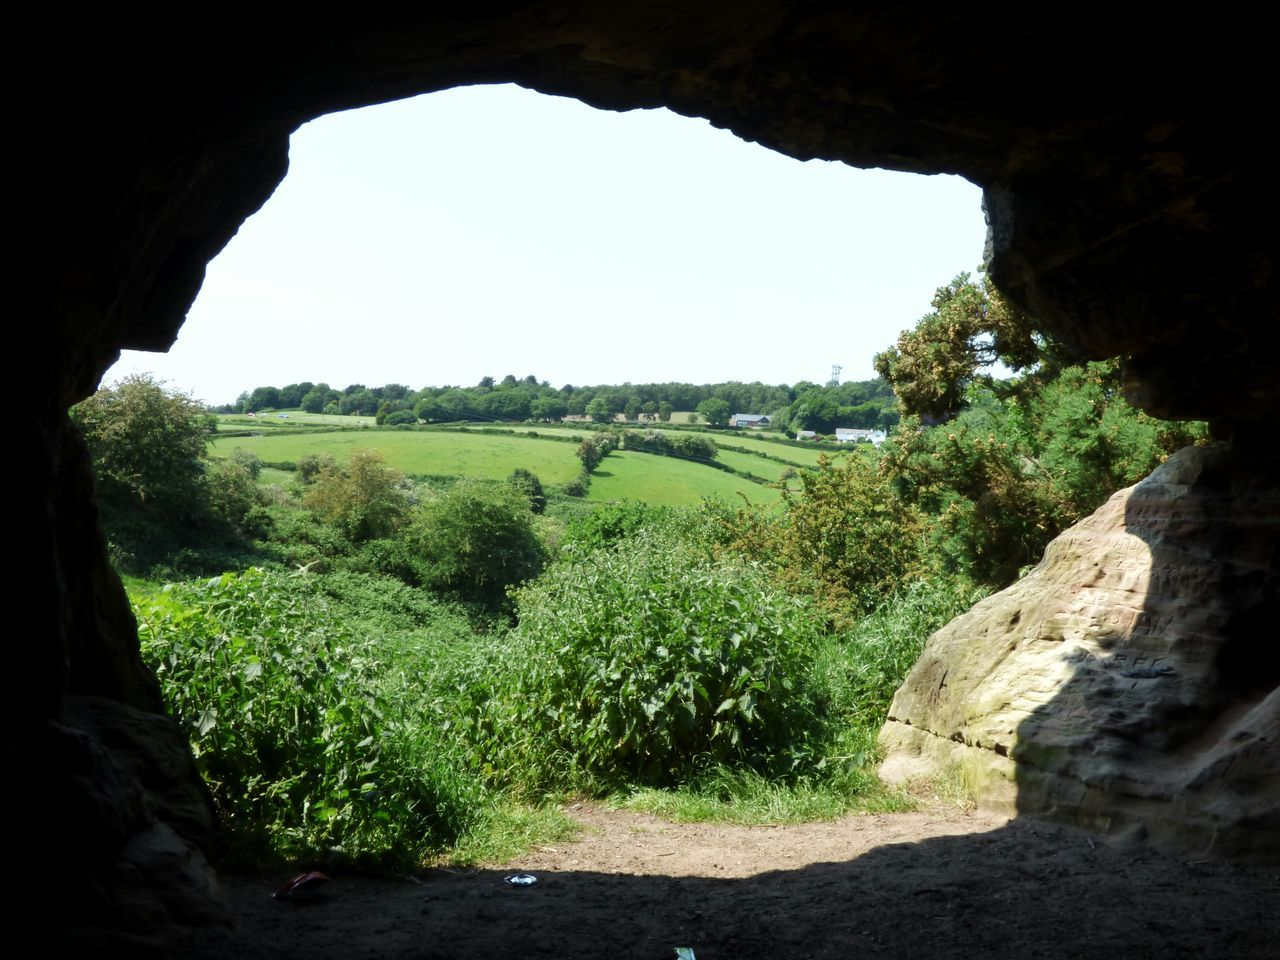 Looking out of a cave in Frodsham, Cheshire // Beauty In Nature Cheshire Day EyeEm Best Shots Eyeem Market Green Color Growth Hill Inside Cave Landscape Mike Whitby Nature No People Plant Scenics Sky Stock Image Stock Photo Stock Photography Sunlight Taking Photos Taking Pictures Tranquil Scene Tranquility Tree